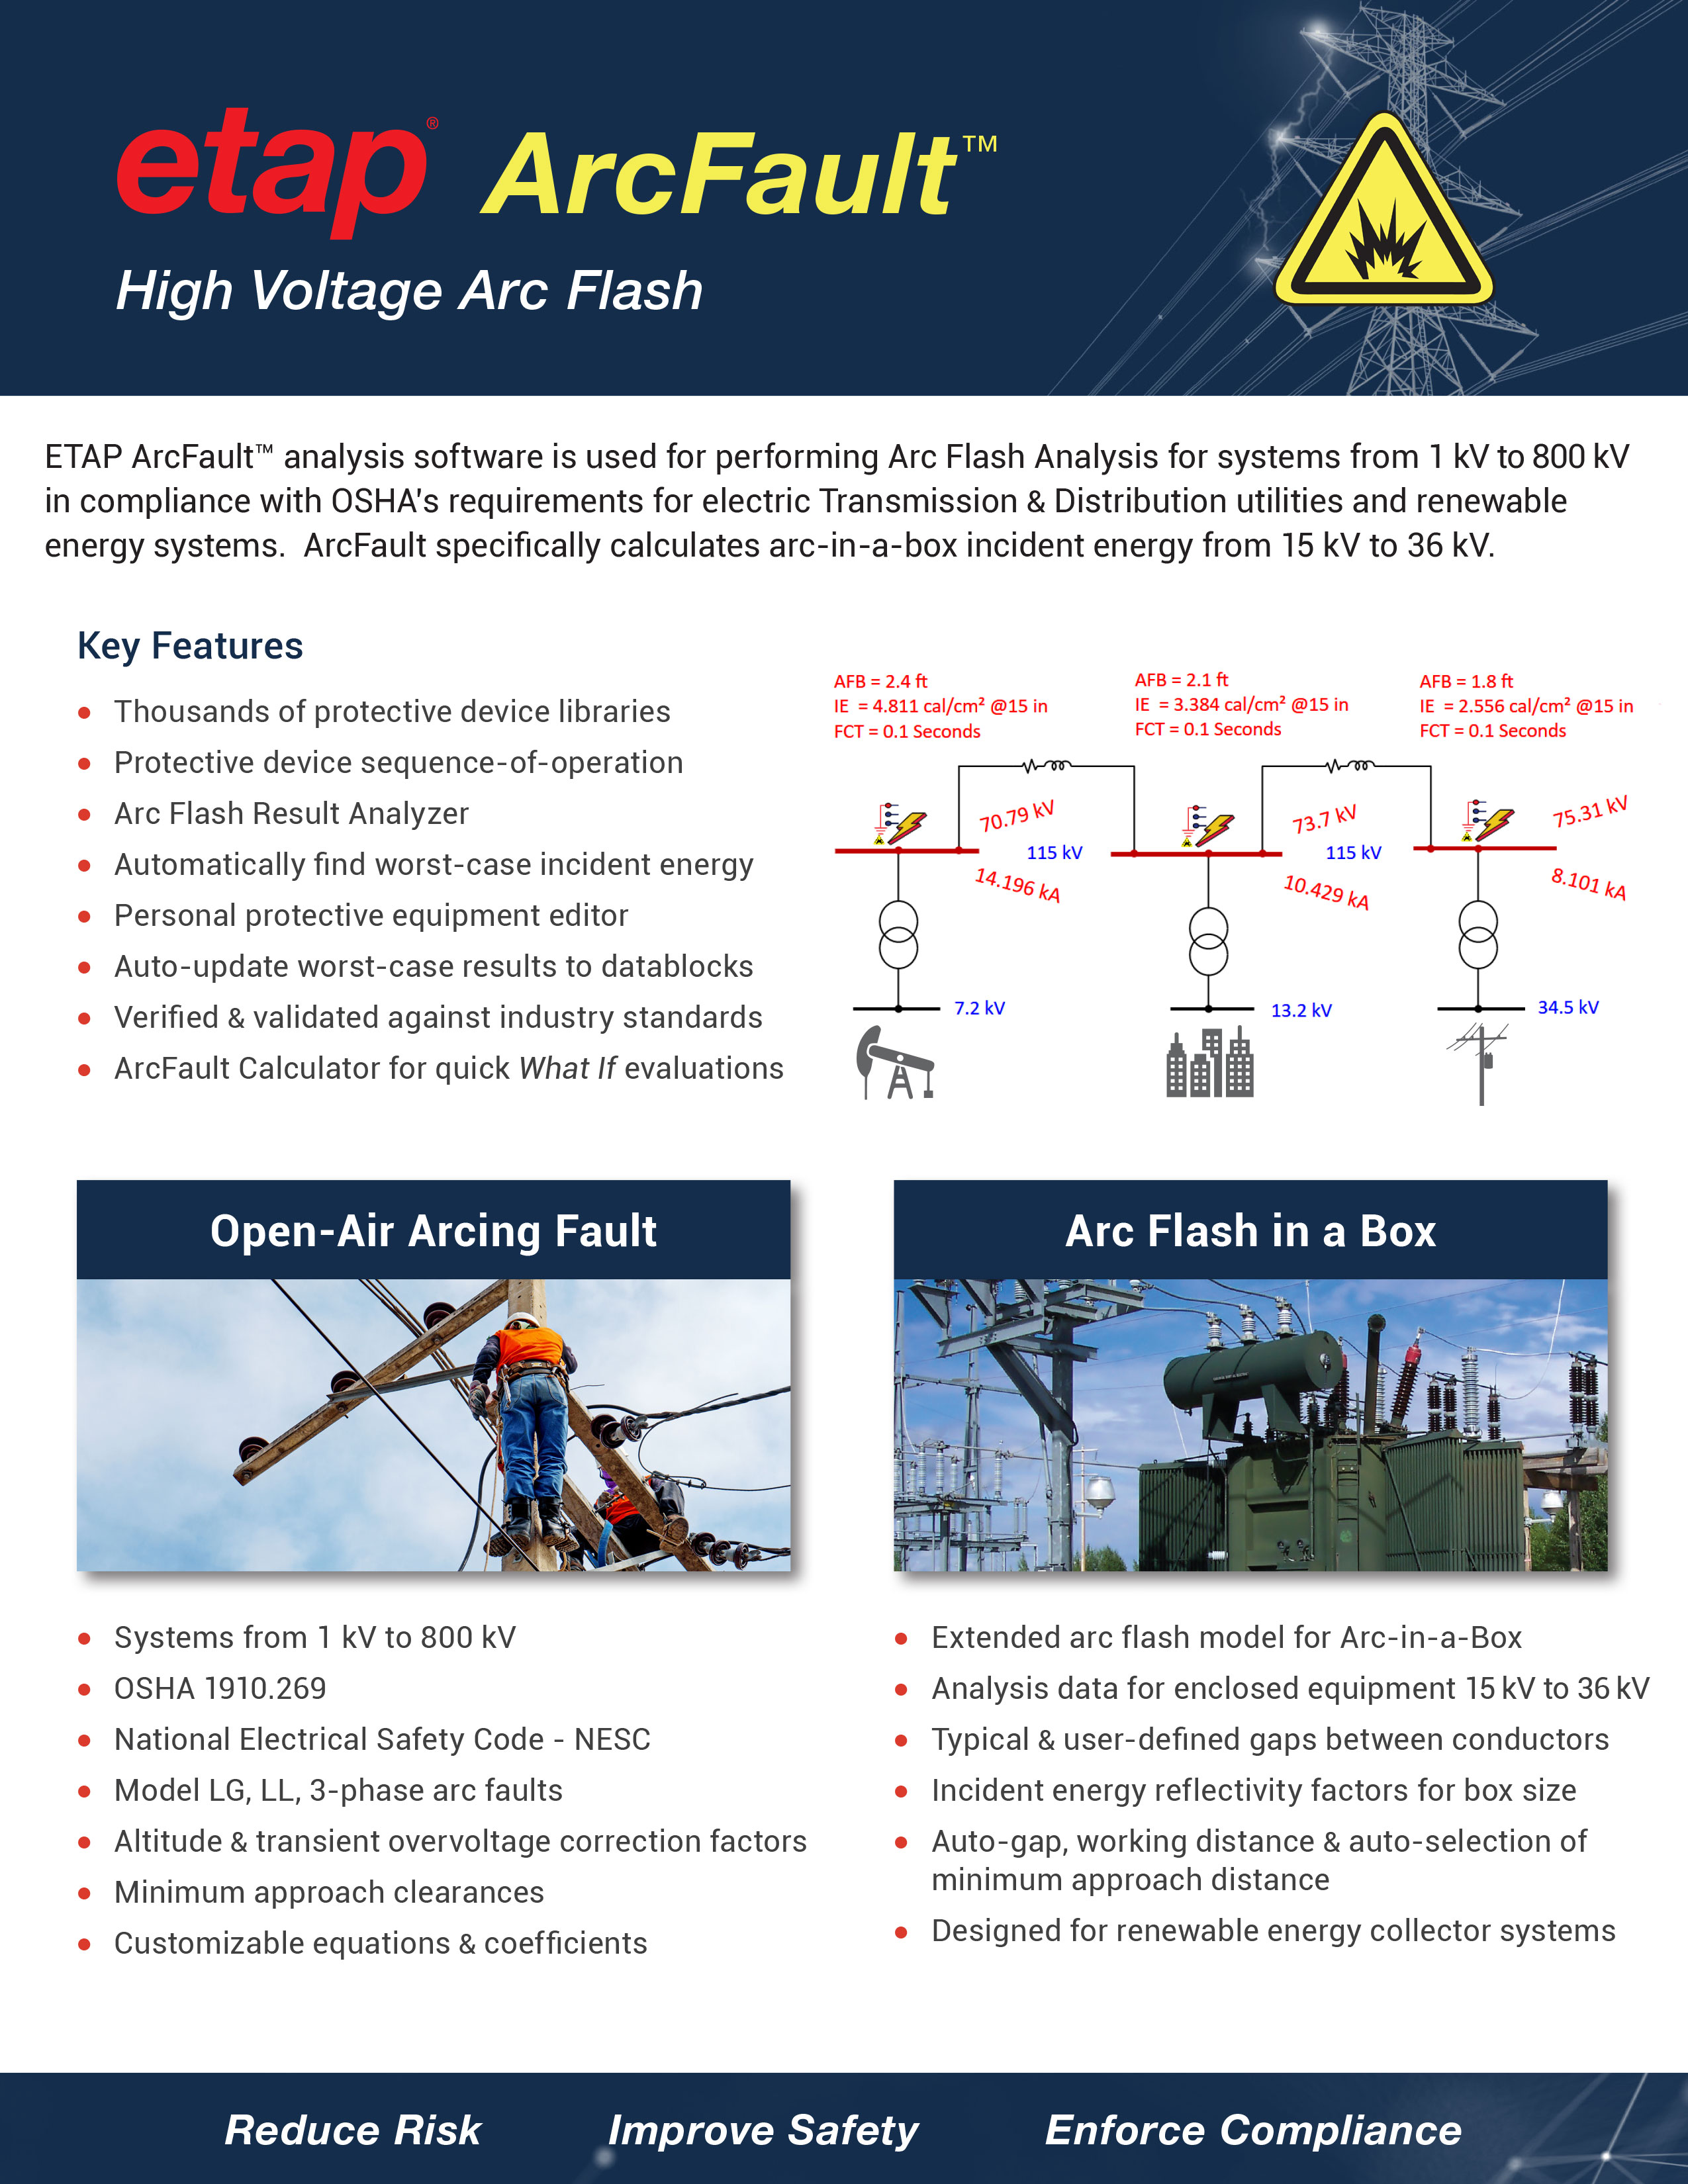 ArcFault High Voltage Arc Flash